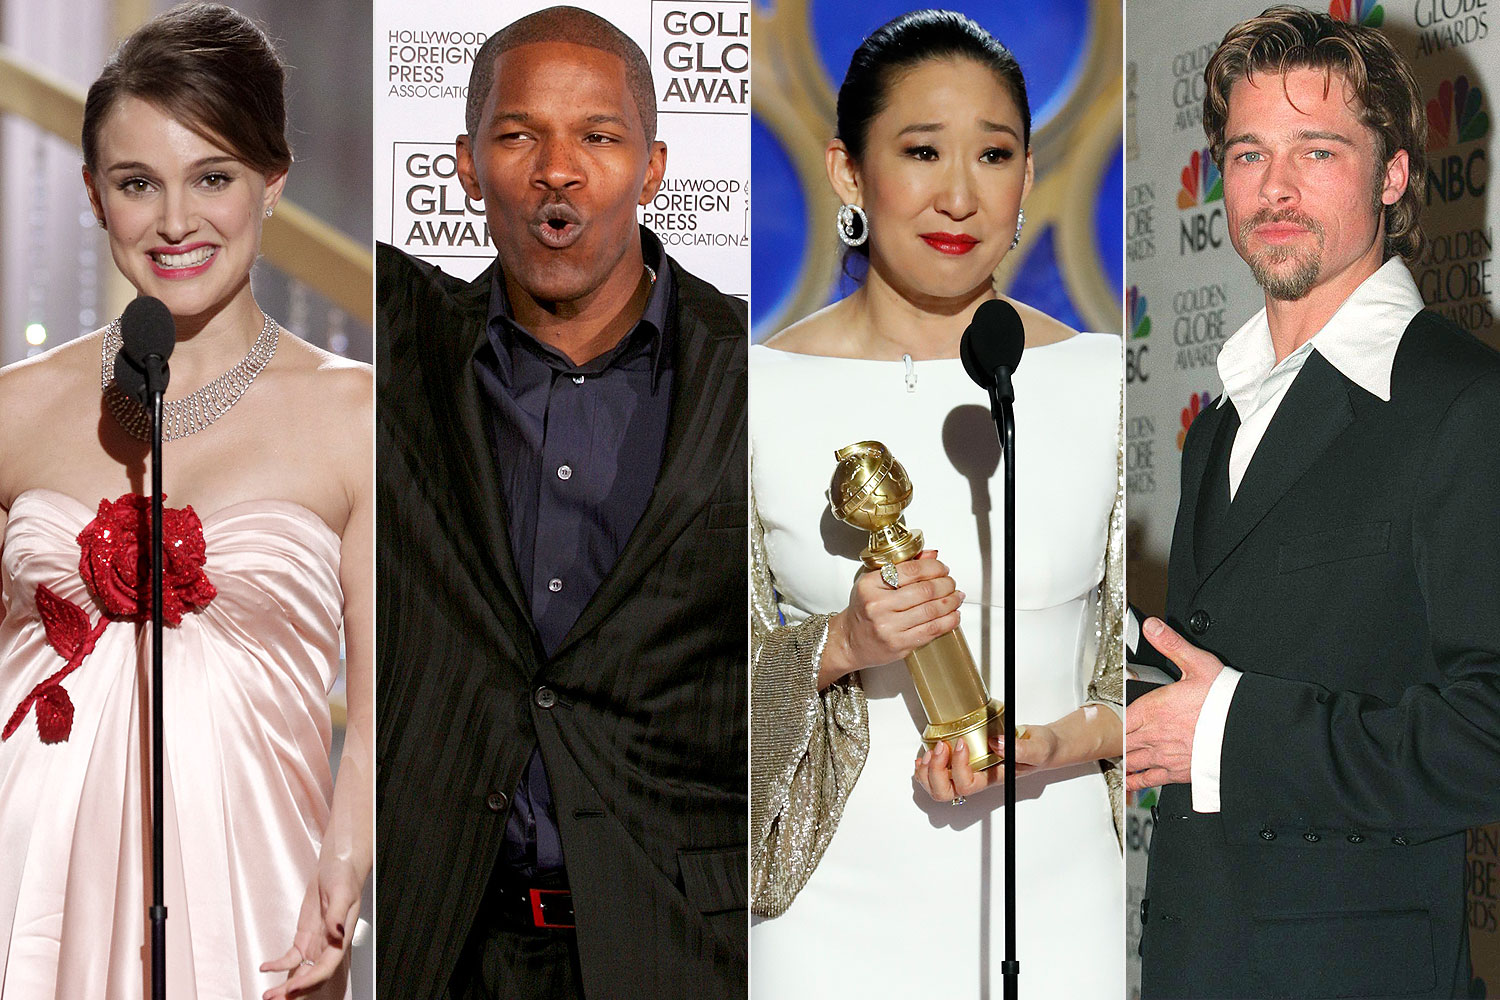 Golden Globes biggest moments